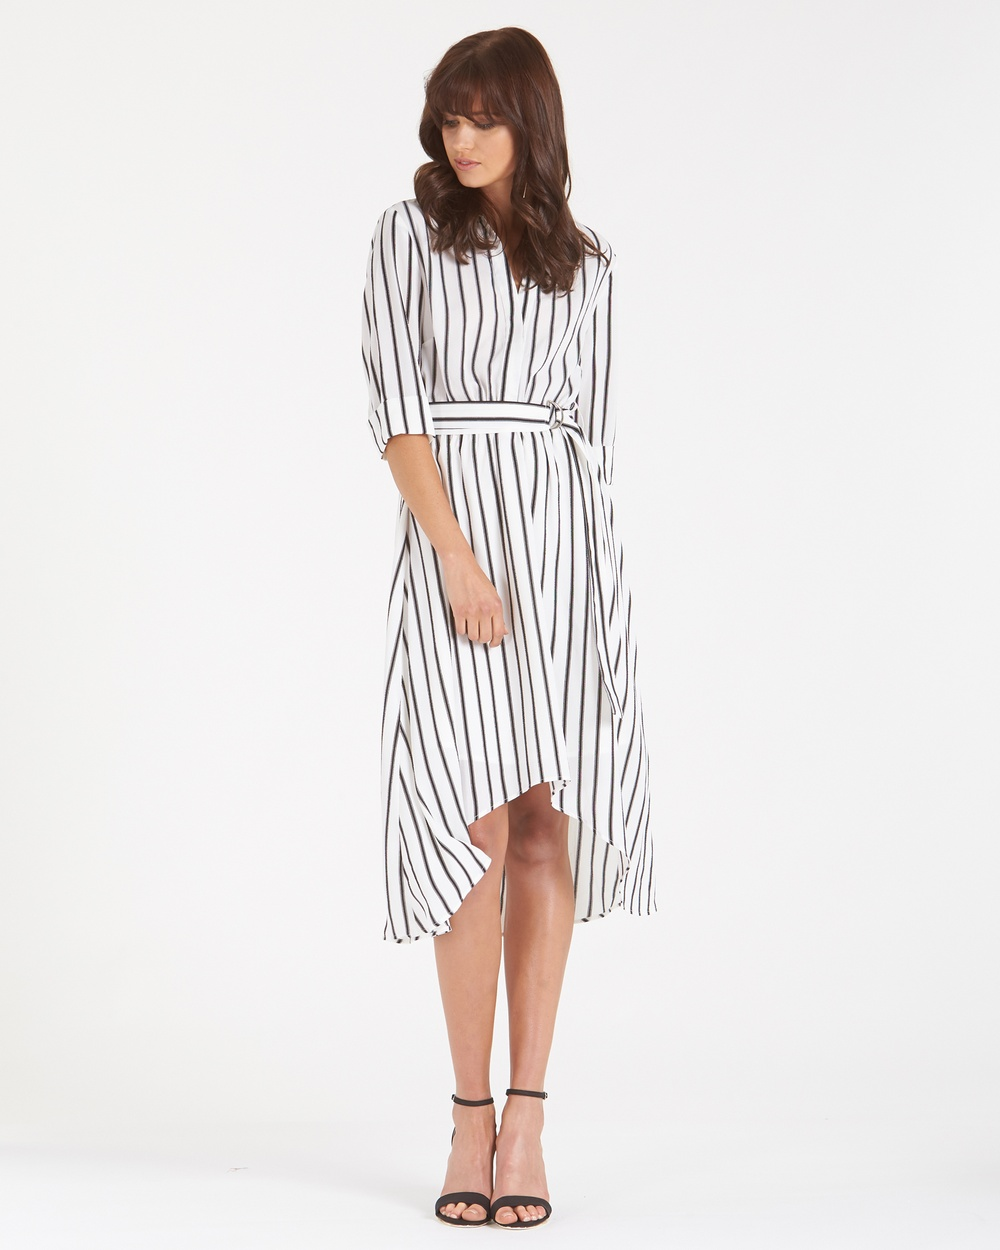 Amelius Allegra Stripe Dress Dresses White-Stripes Allegra Stripe Dress